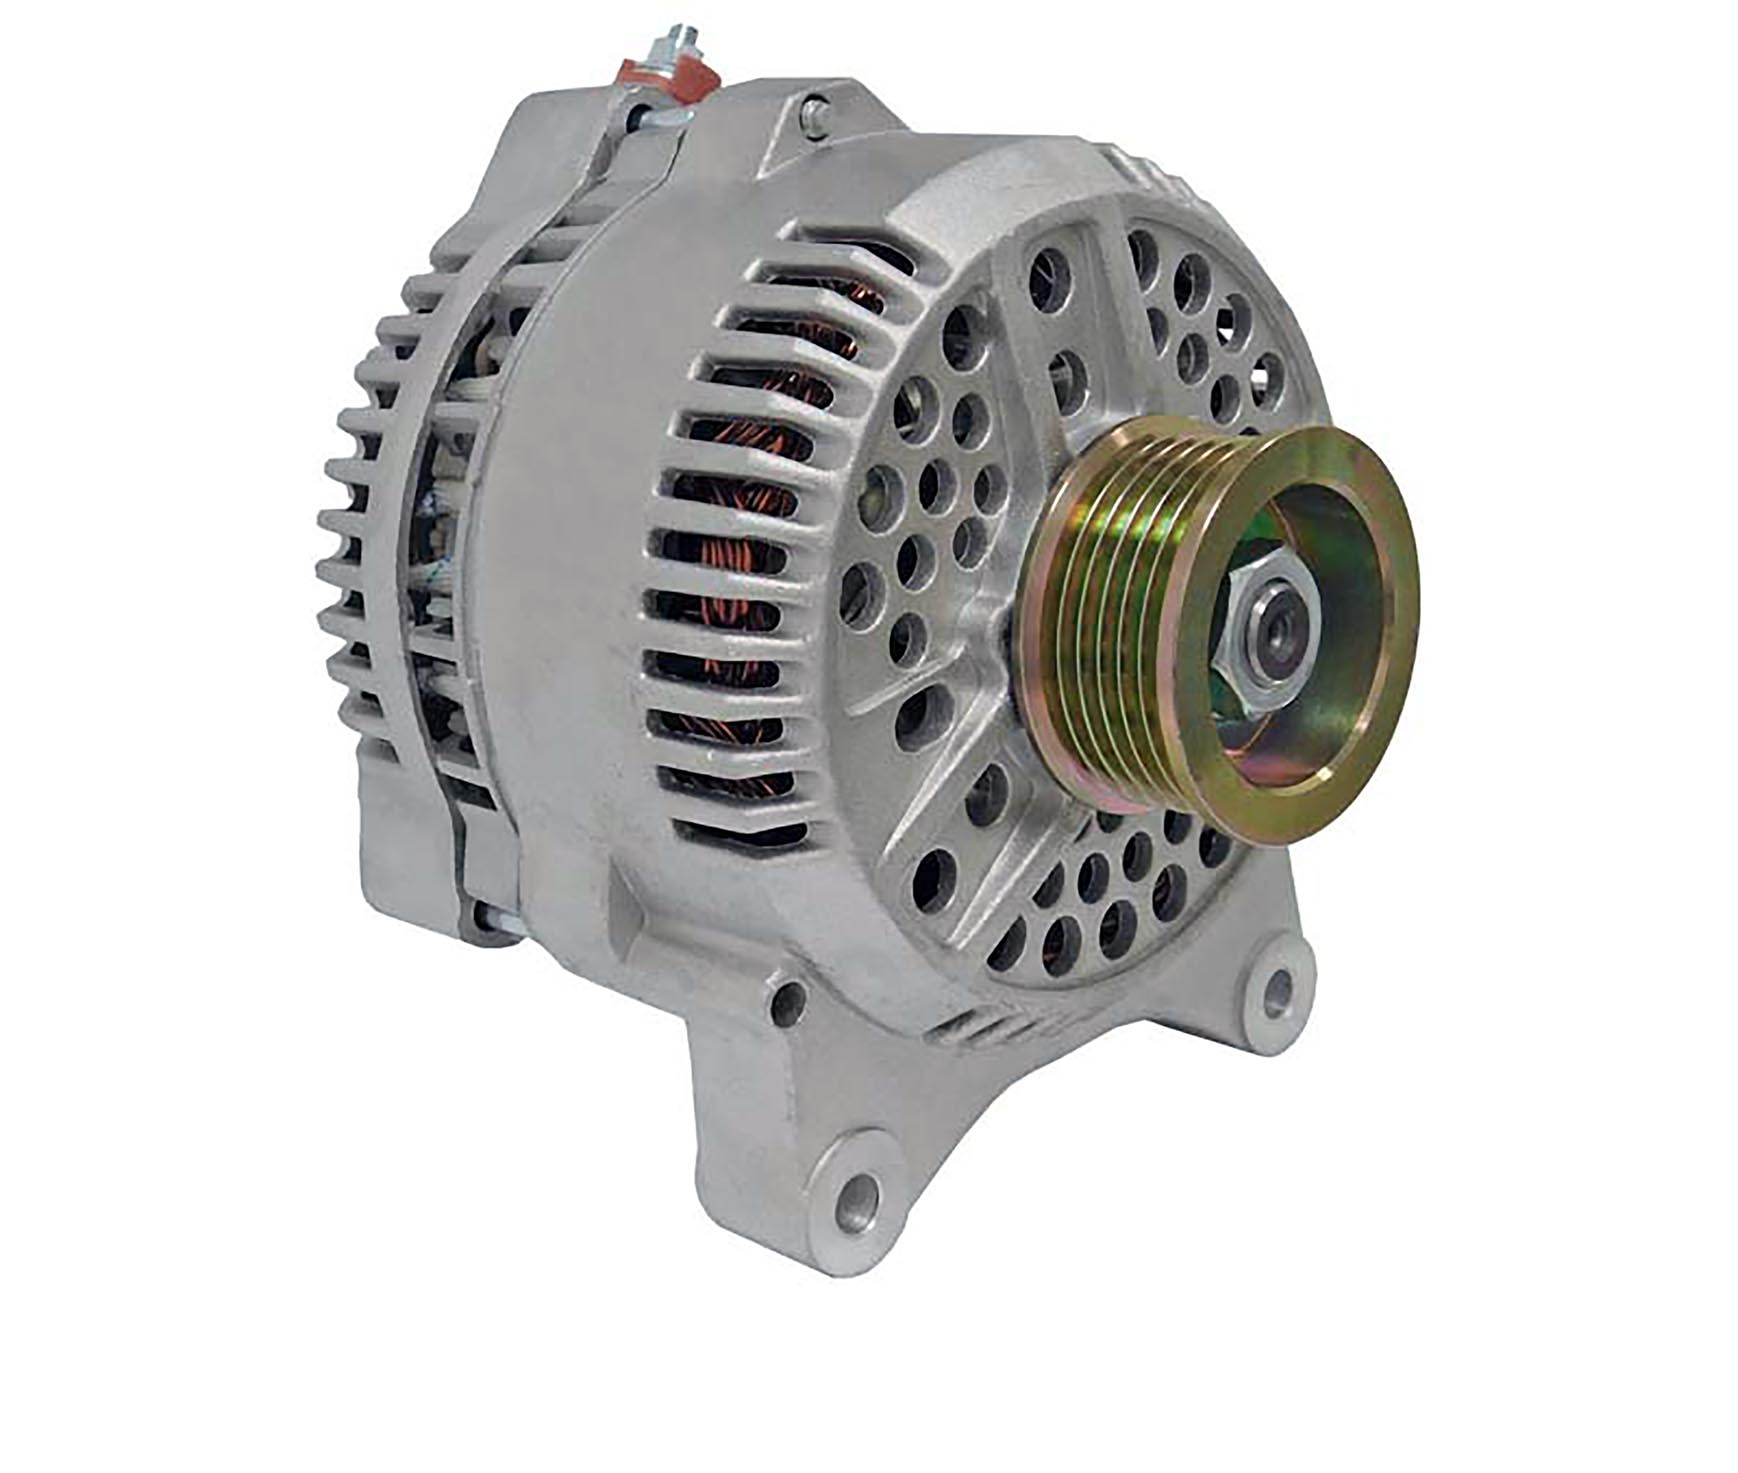 hight resolution of new hi amp output alternator for ford mustang 1996 1998 4 6l ford expedition excursion f150 f250 f350 f450 200 amps